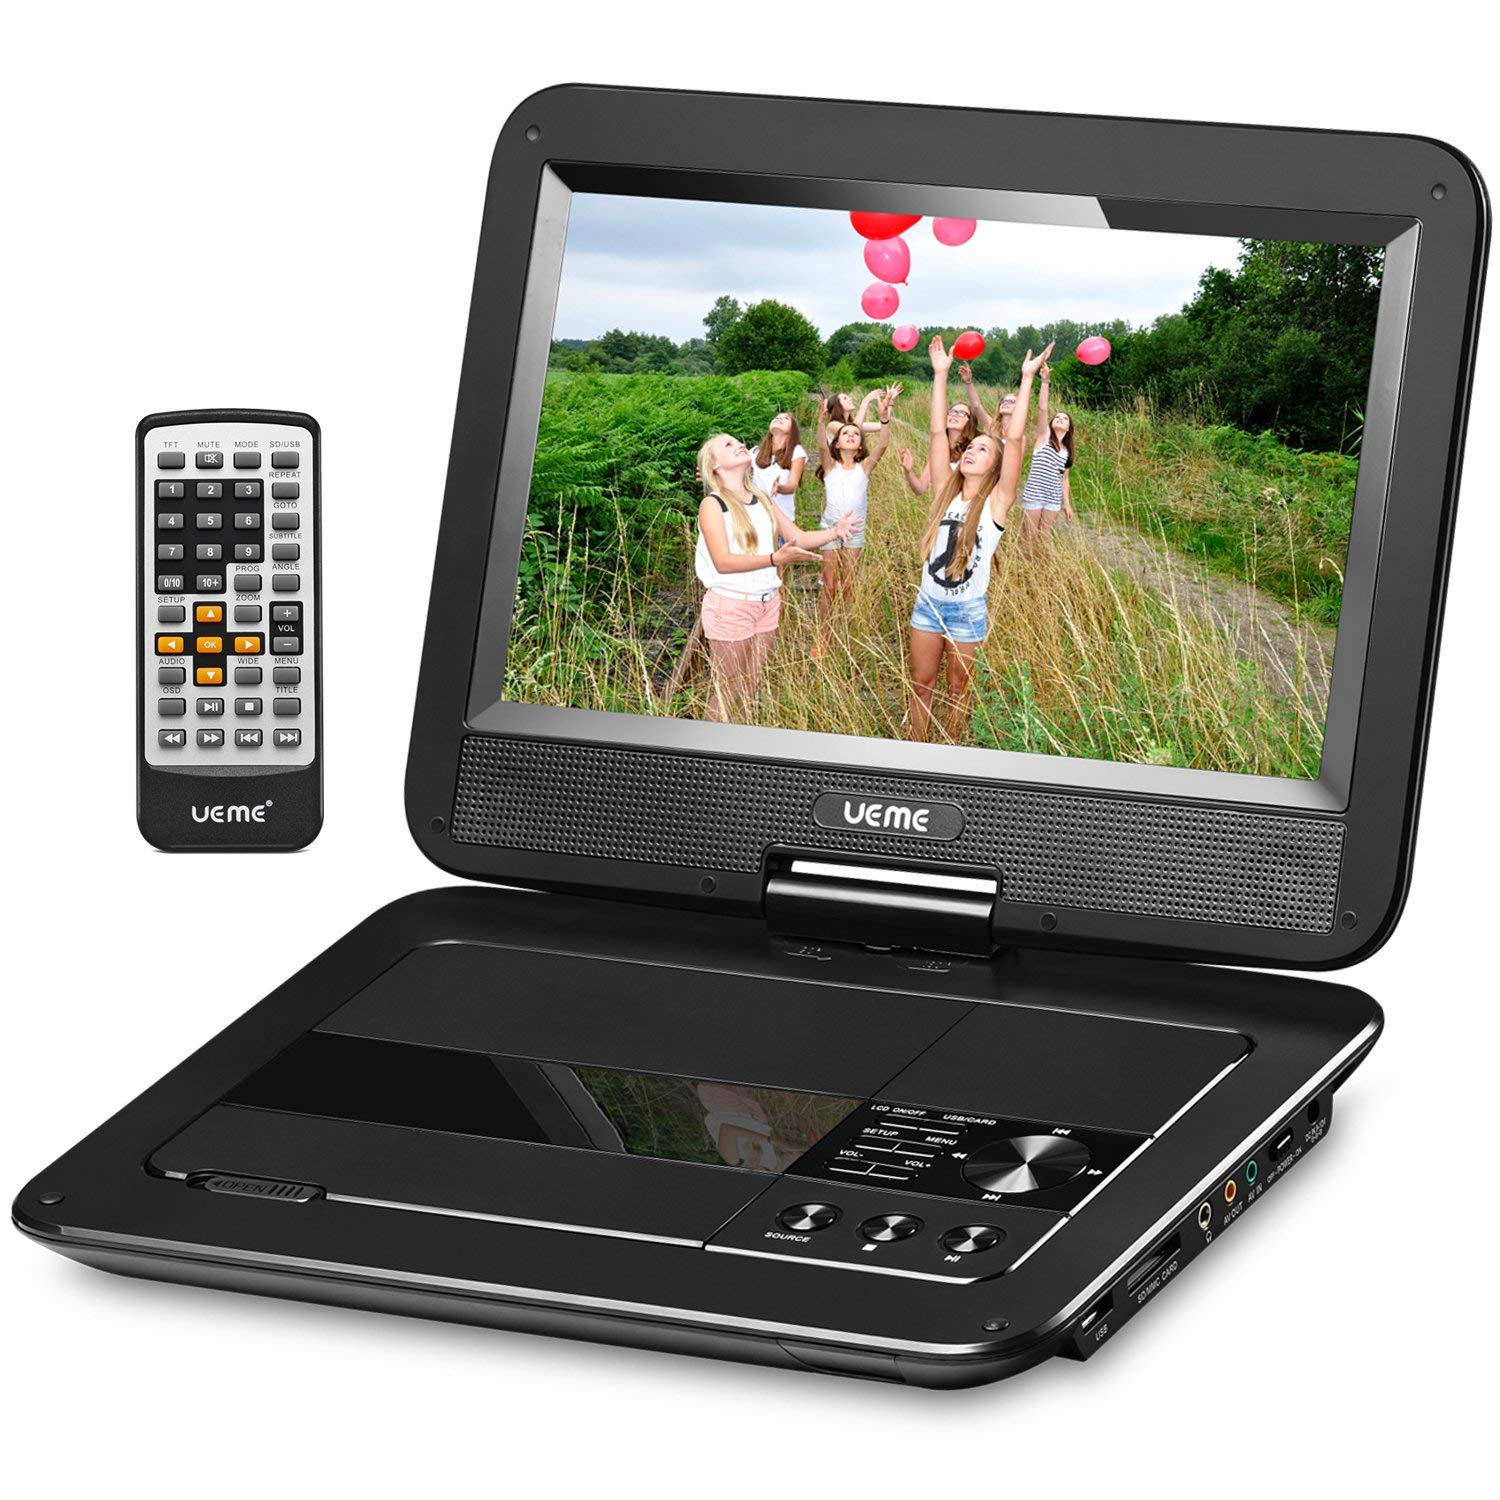 UEME 10.1-inches Portable DVD Player with Car Headrest Holder and Swivel Screen, PD-1010, (Black)